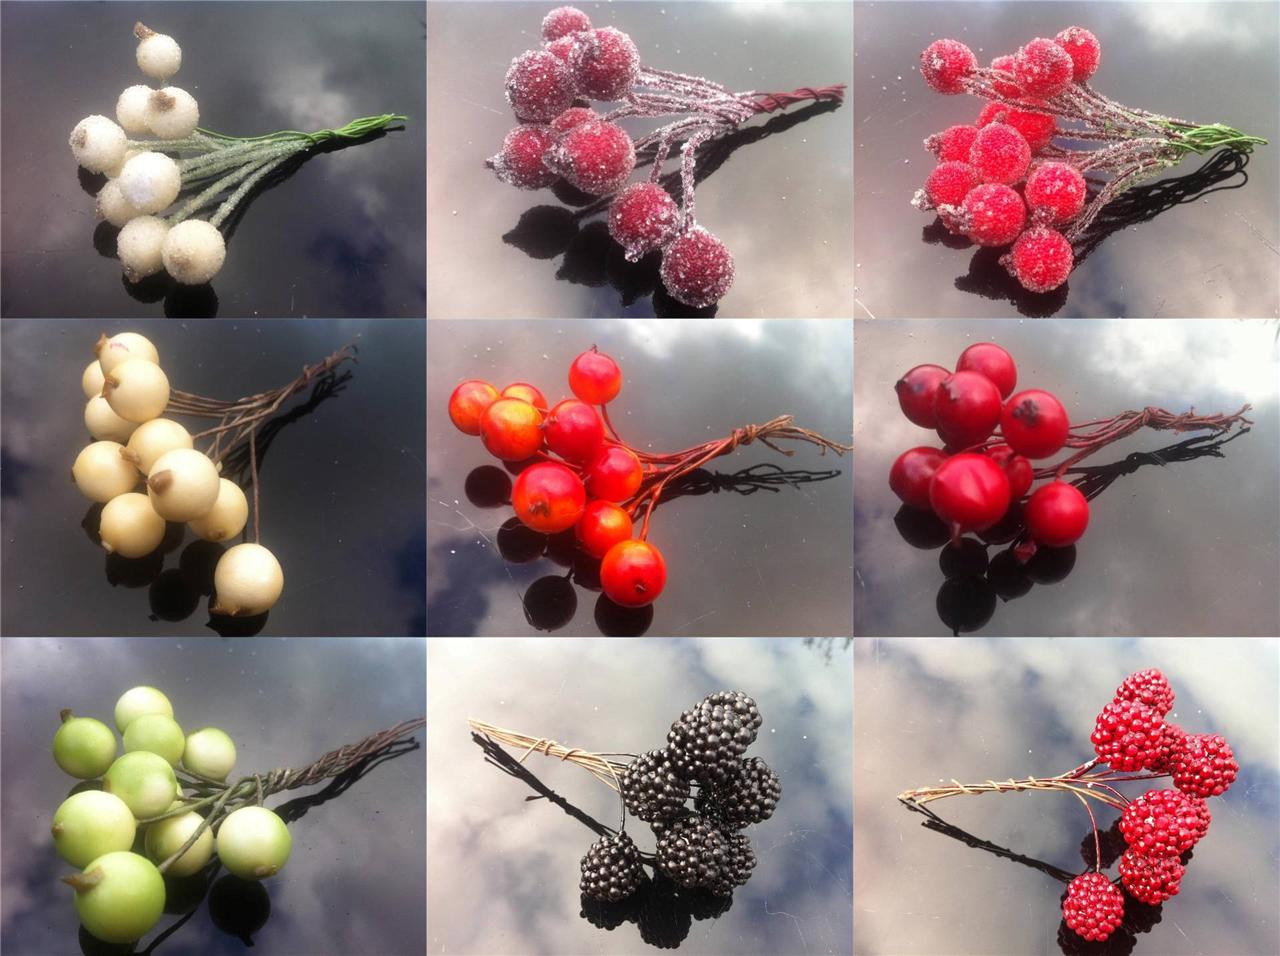 Artifical-berries-perfect-for-Christmas-decoration-garlands-wreaths-cakes-logs